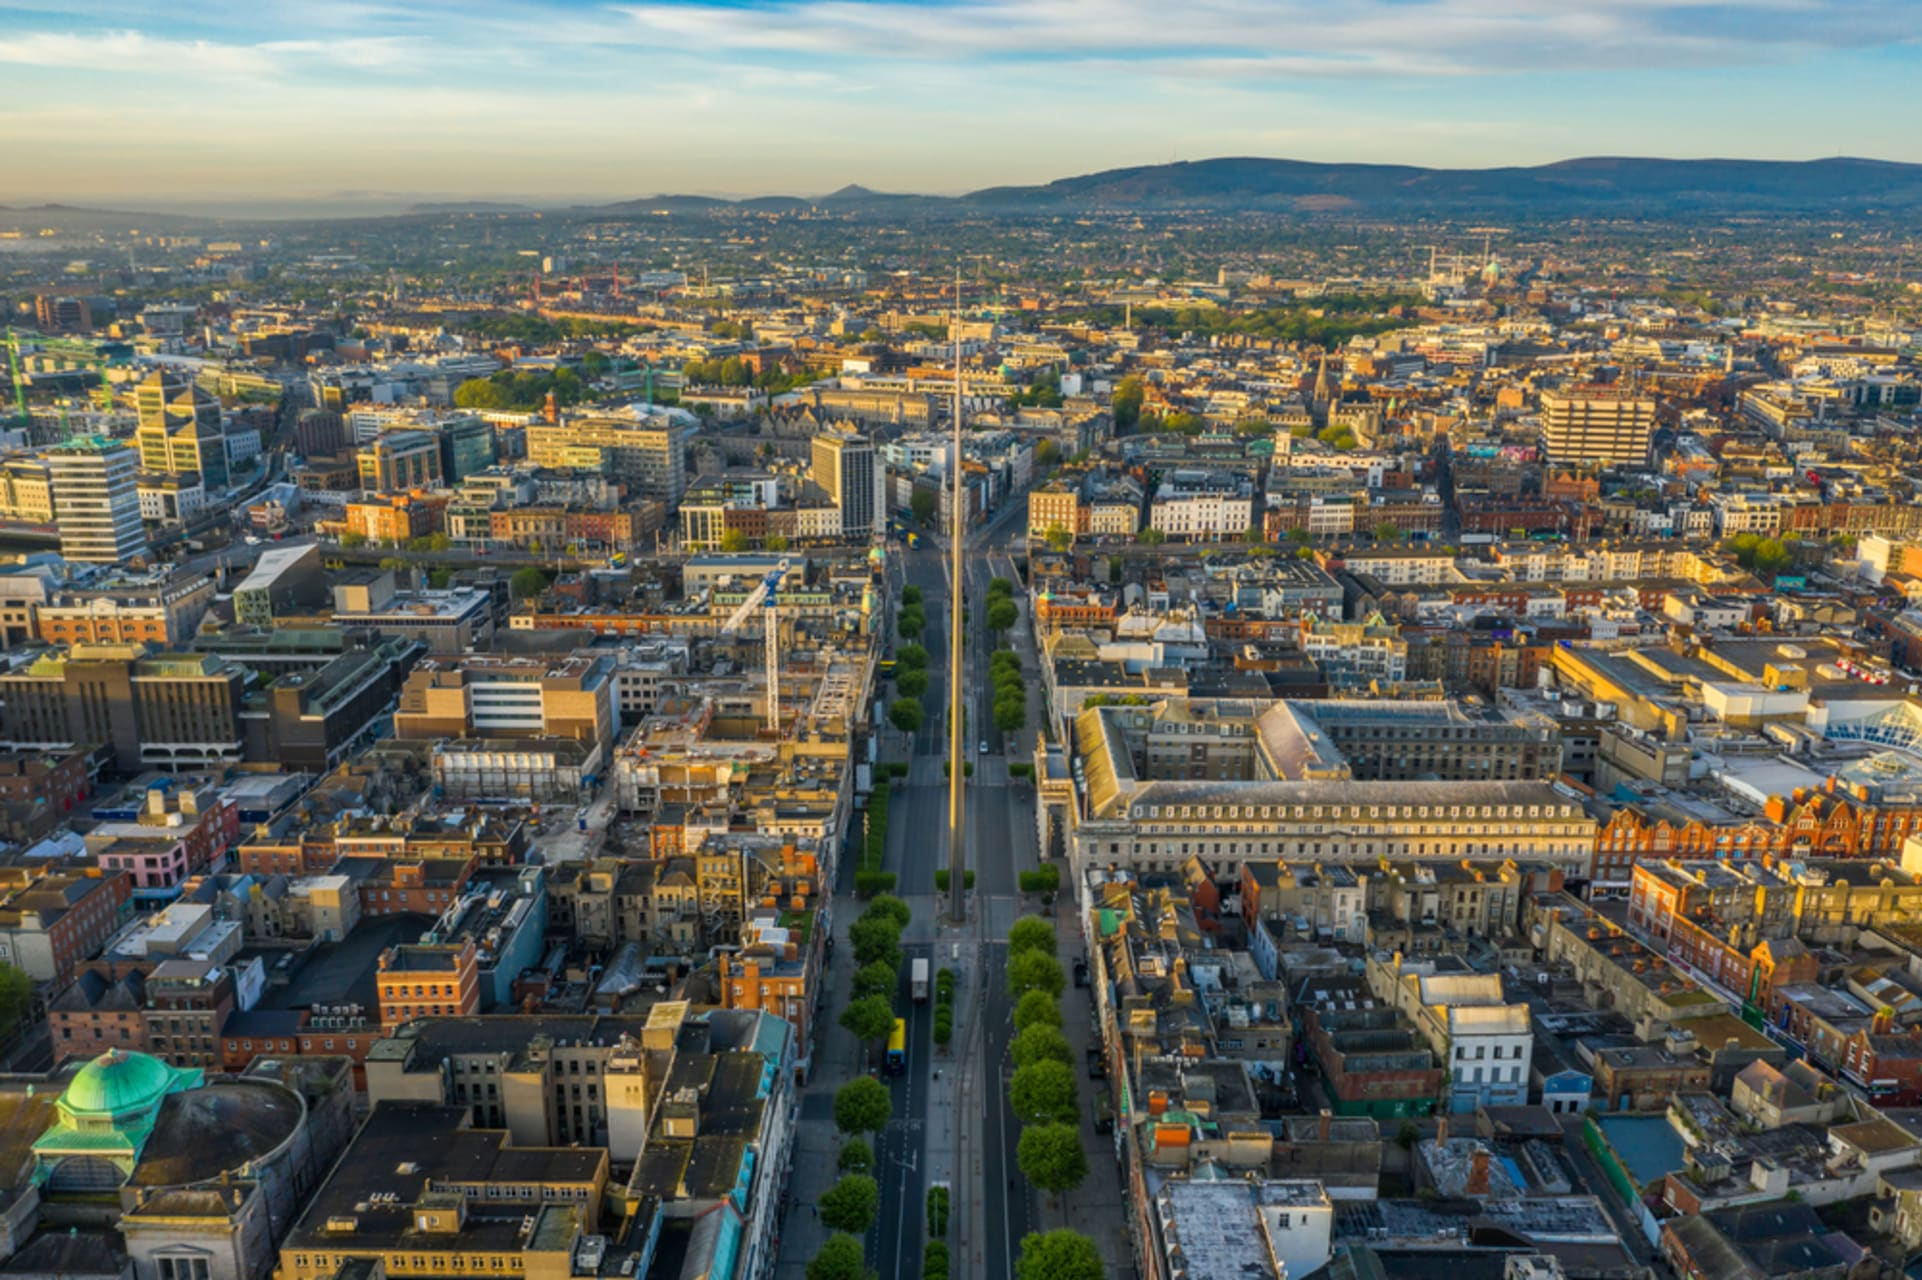 Dublin - Easter 1916 The city that fought an Empire